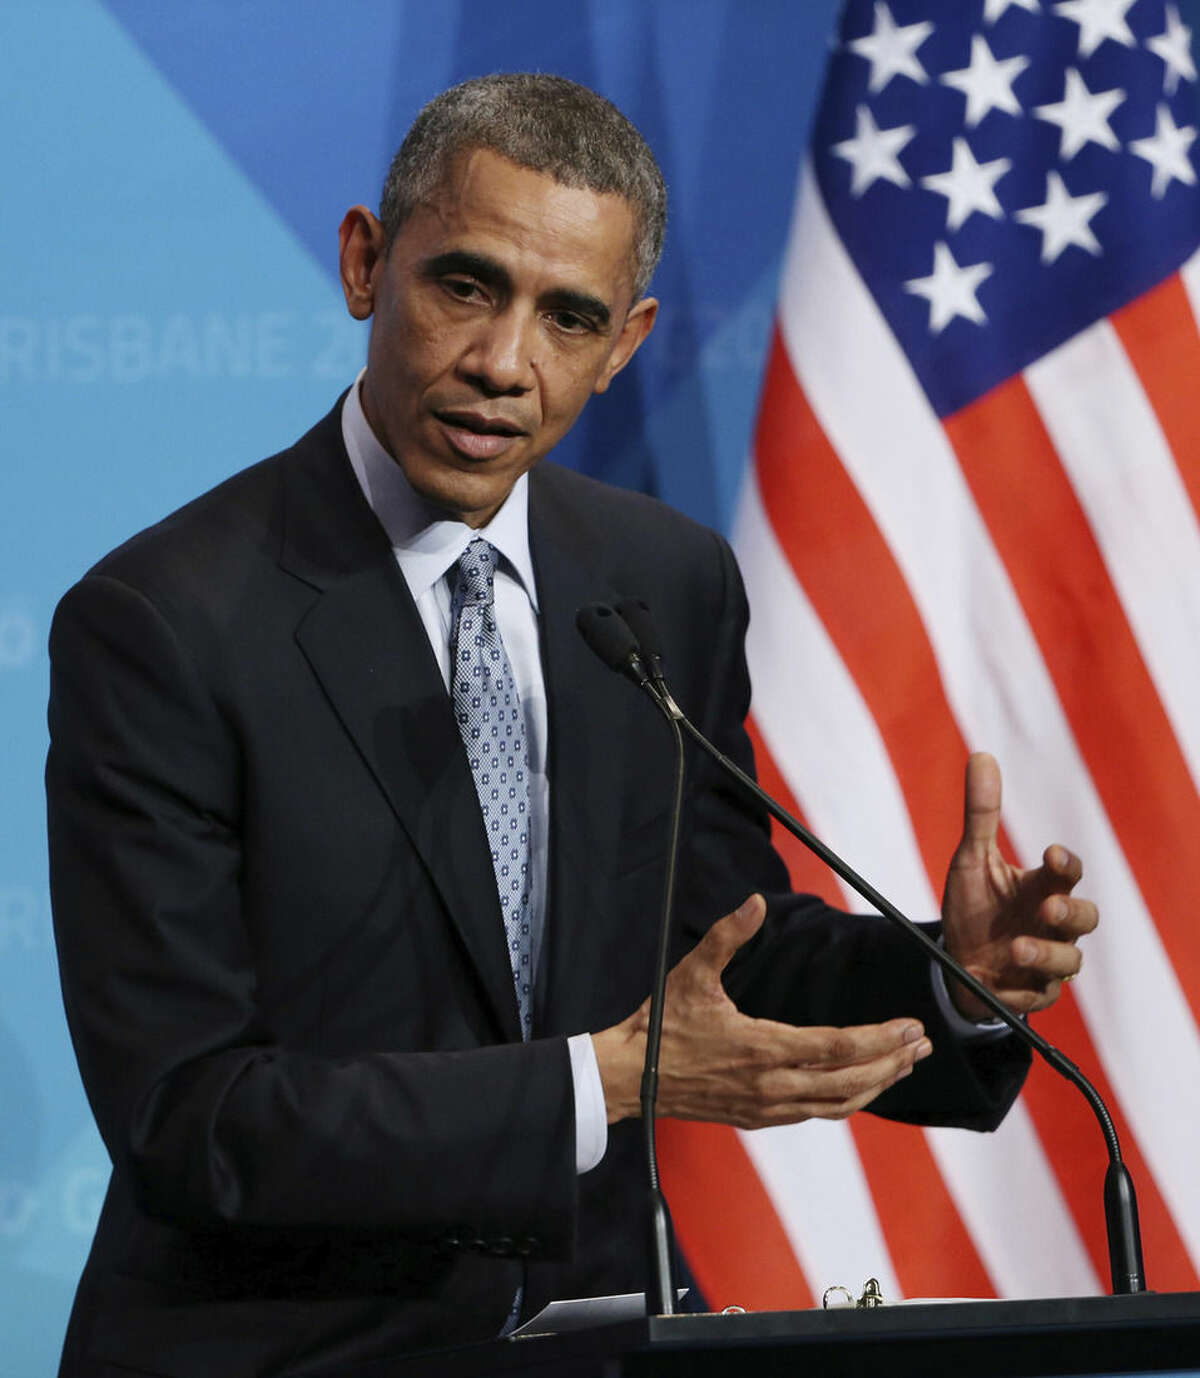 U.S. President Barak Obama gestures as he answers a question from the media during a press conference at the conclusion of the G-20 summit in Brisbane, Australia, Sunday, Nov. 16, 2014.(AP Photo/Rob Griffith)